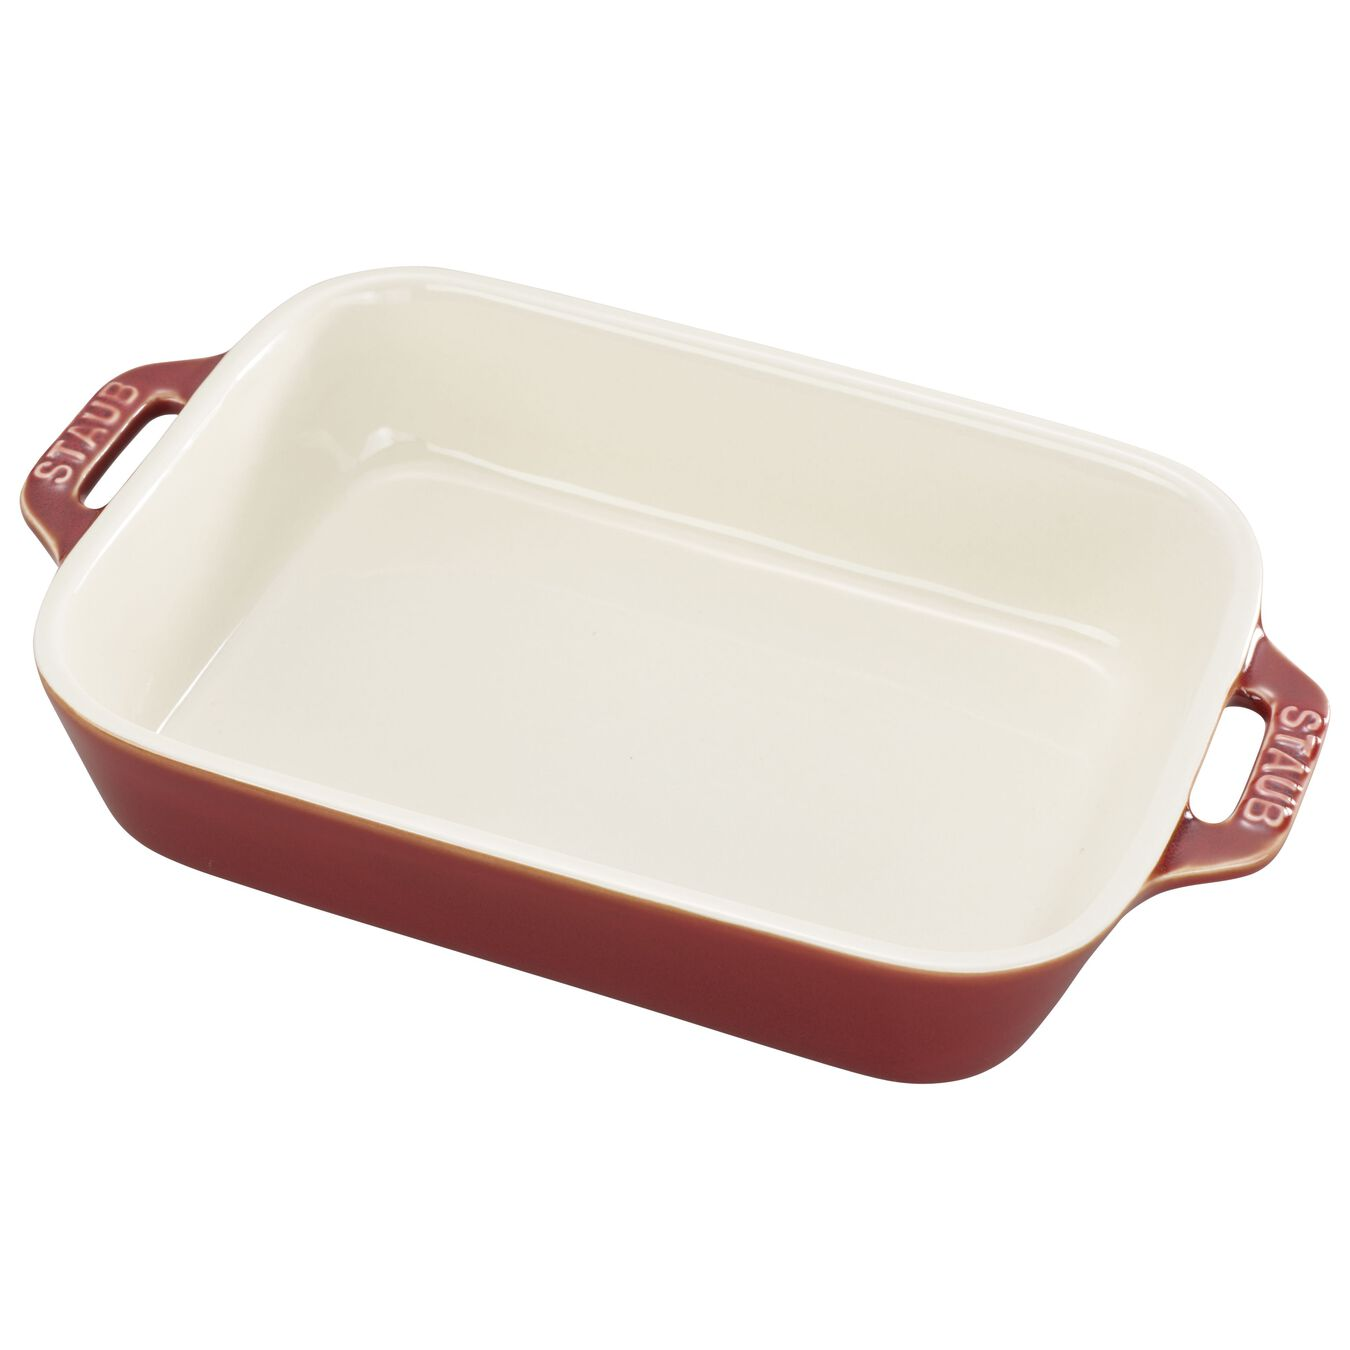 2 Piece square Bakeware set, Red,,large 2